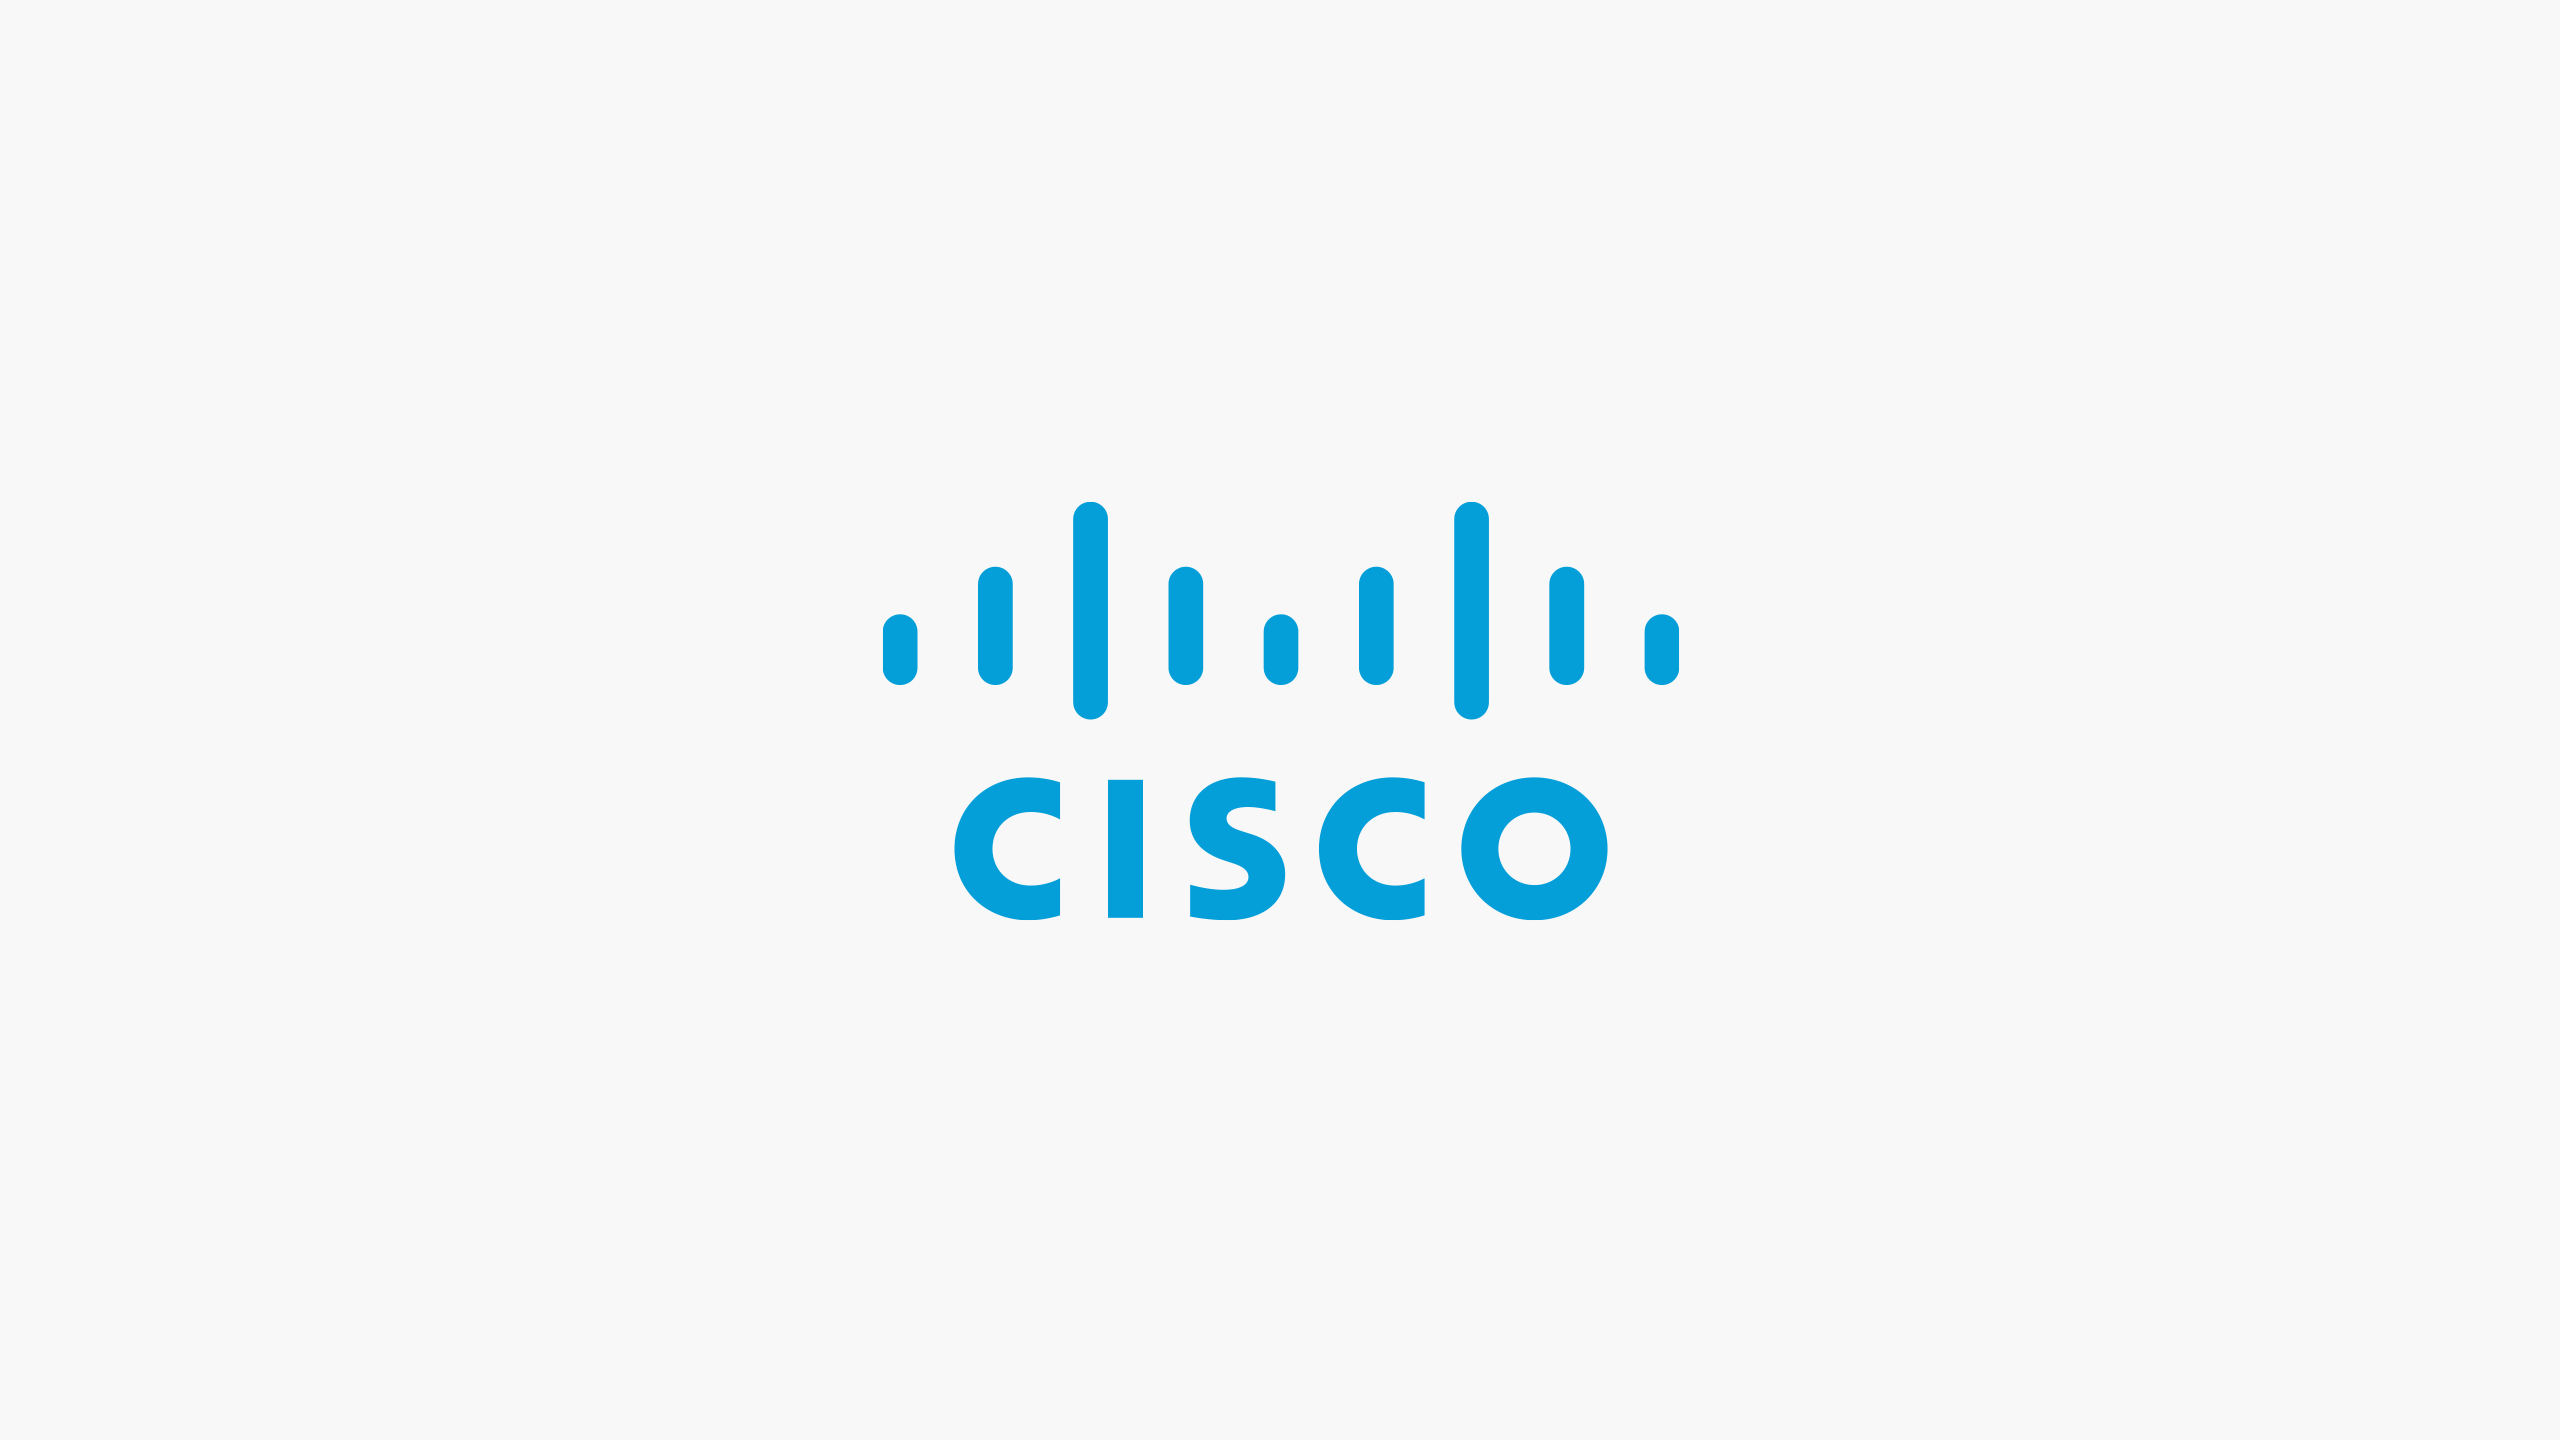 blue Cisco logo on light gray background